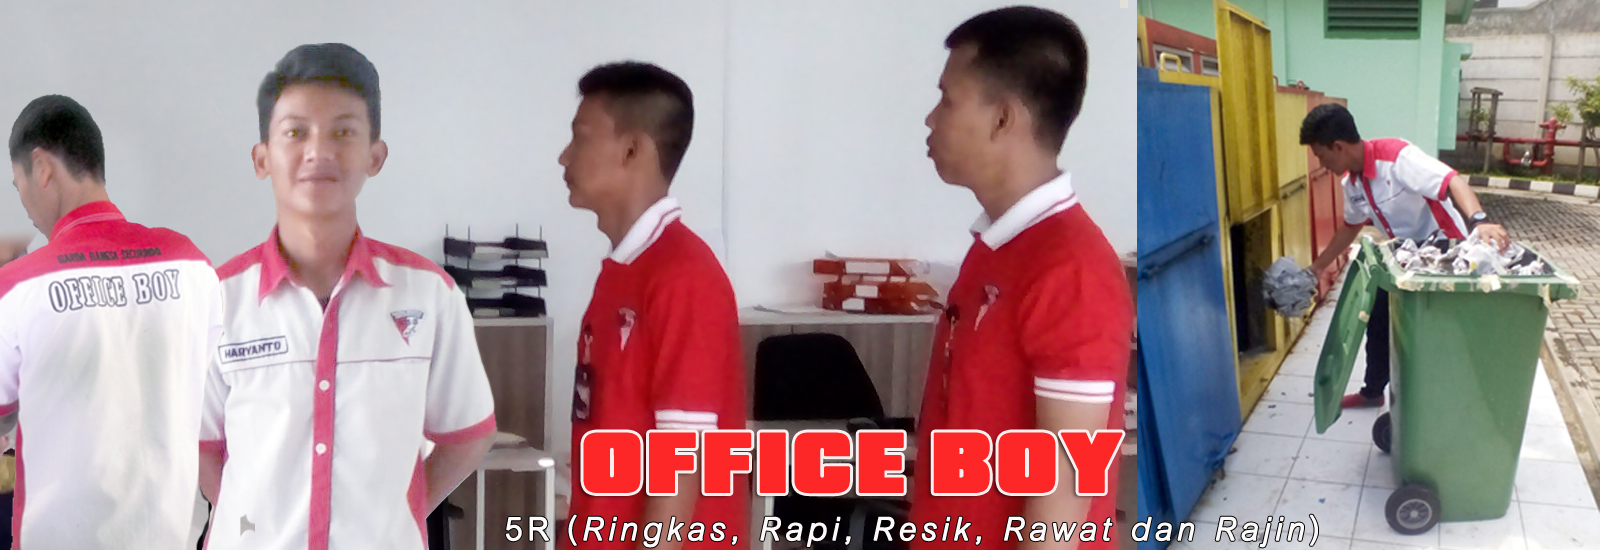 gbs-office boy